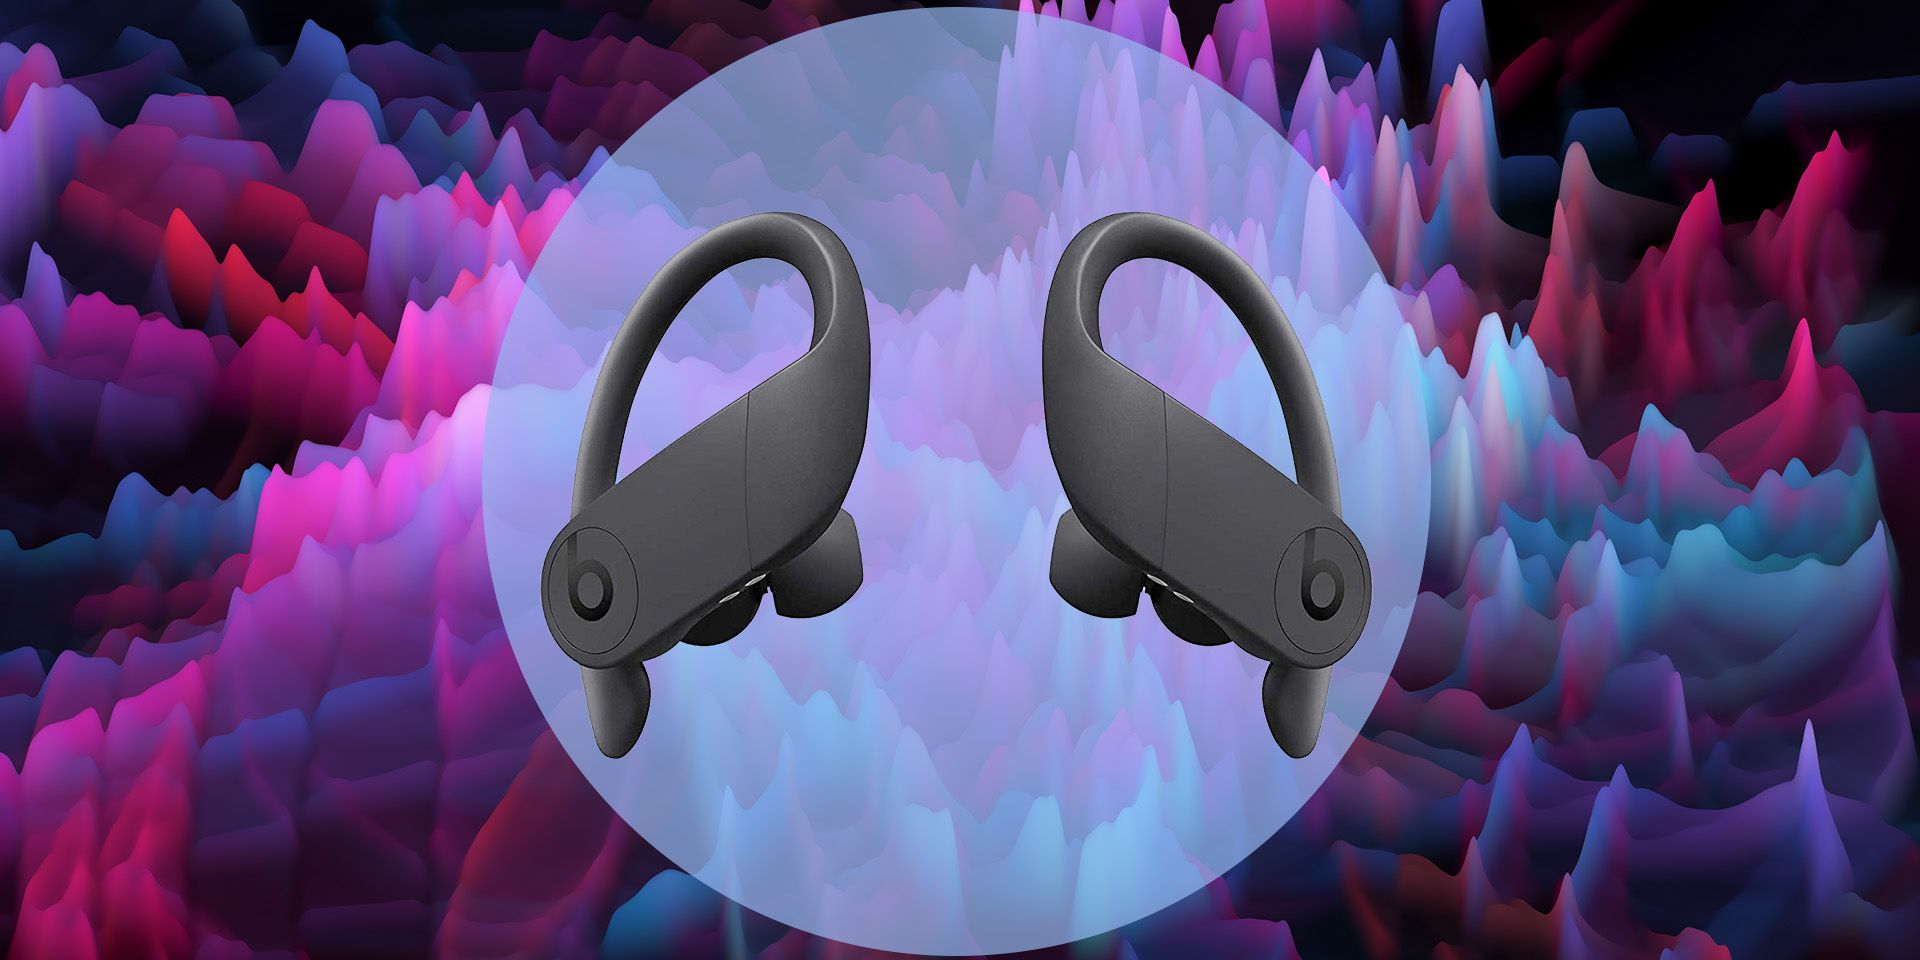 Powerbeats Pro Truly Wireless Earphones Are on Sale at Amazon Right Now